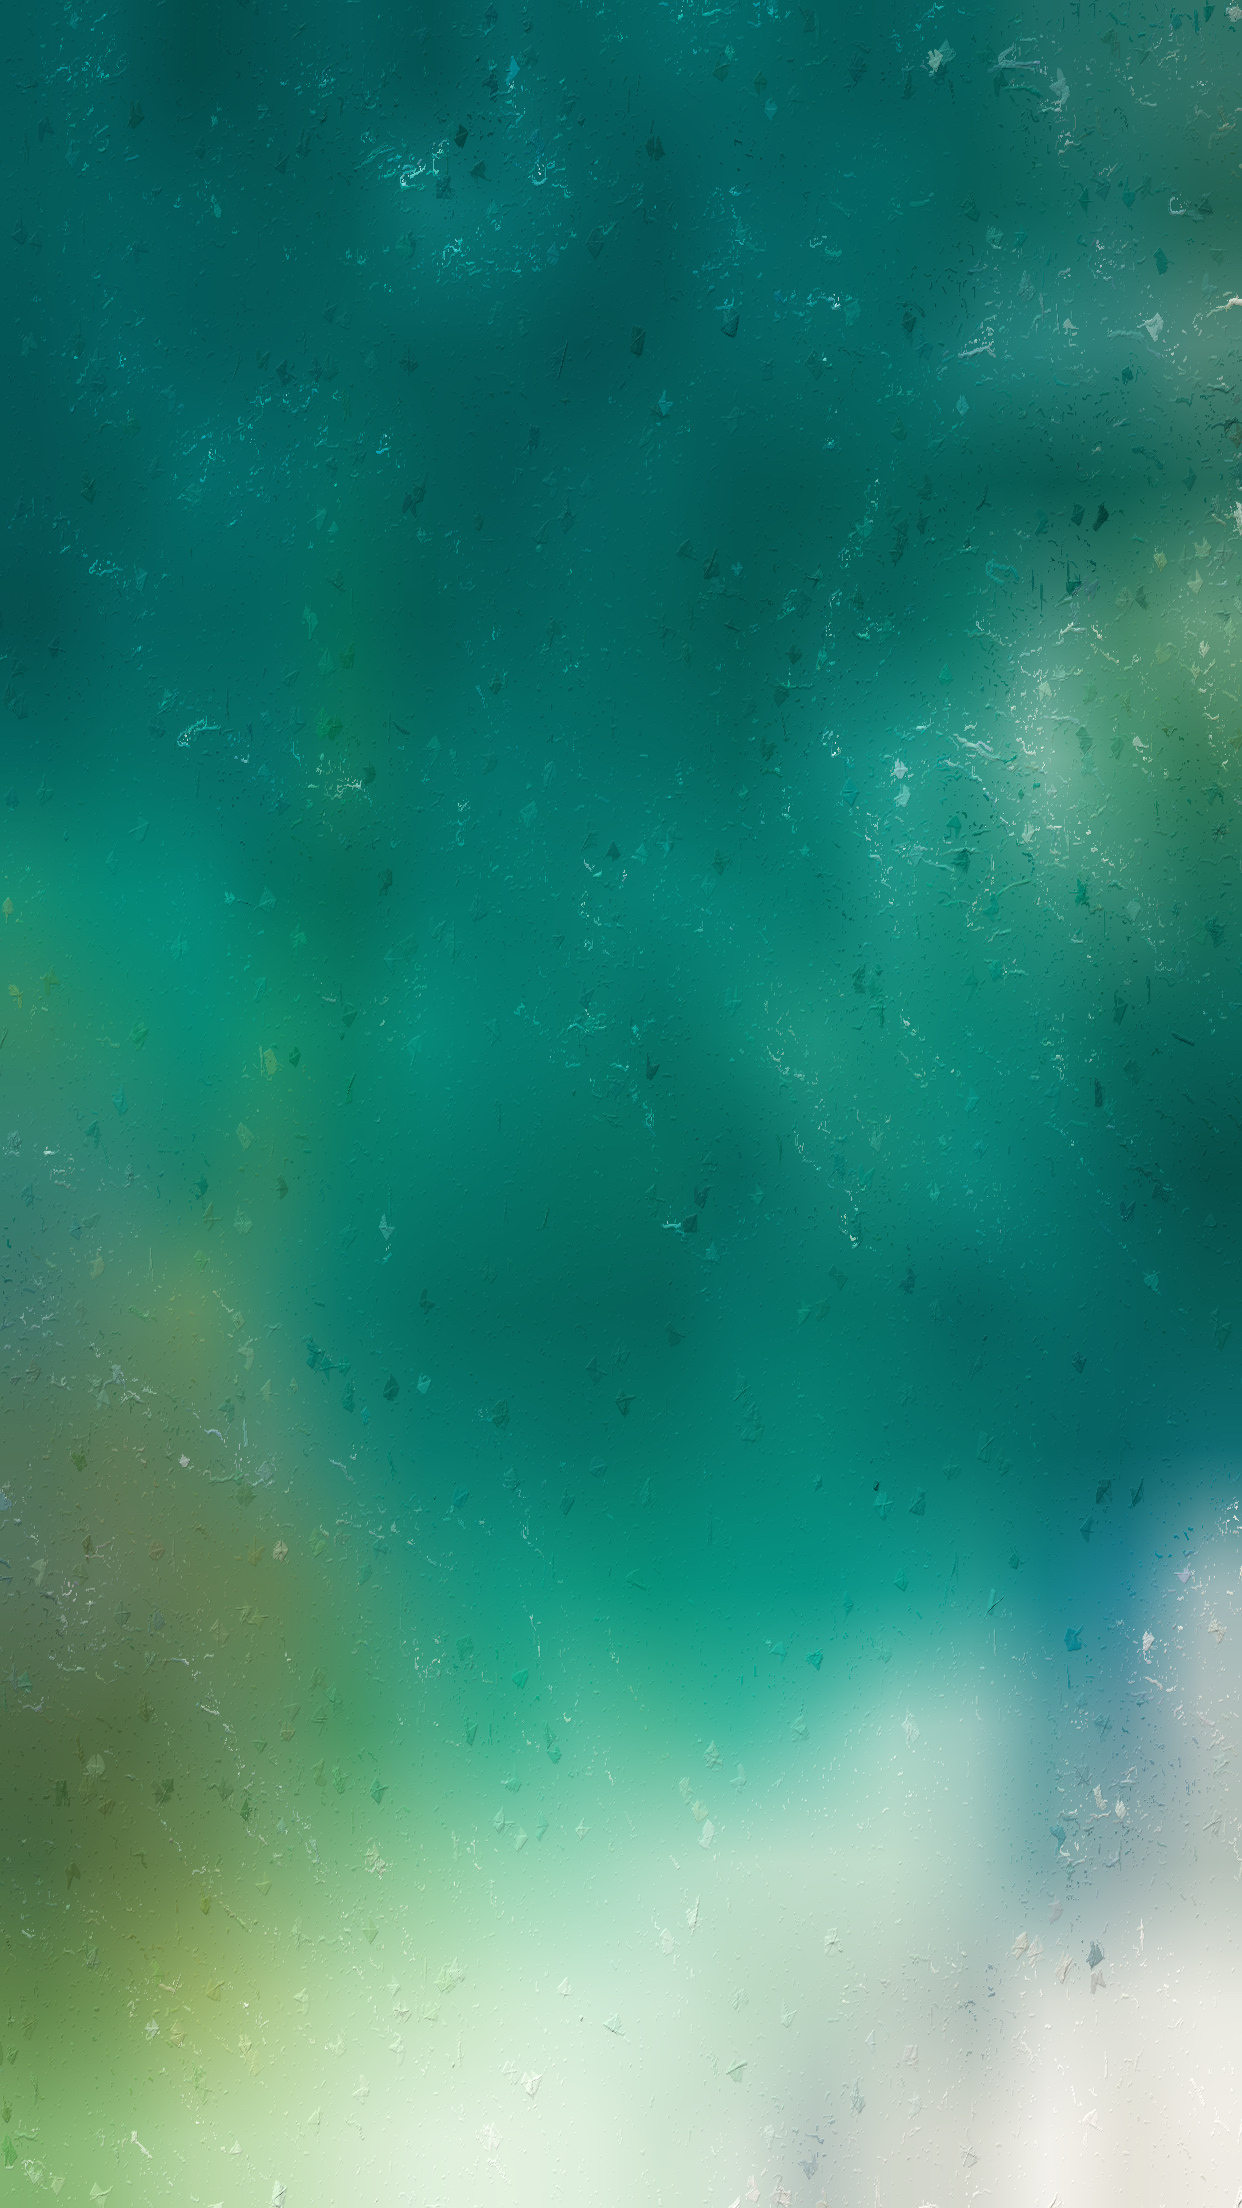 download Wallpapers inspired by iOS 10